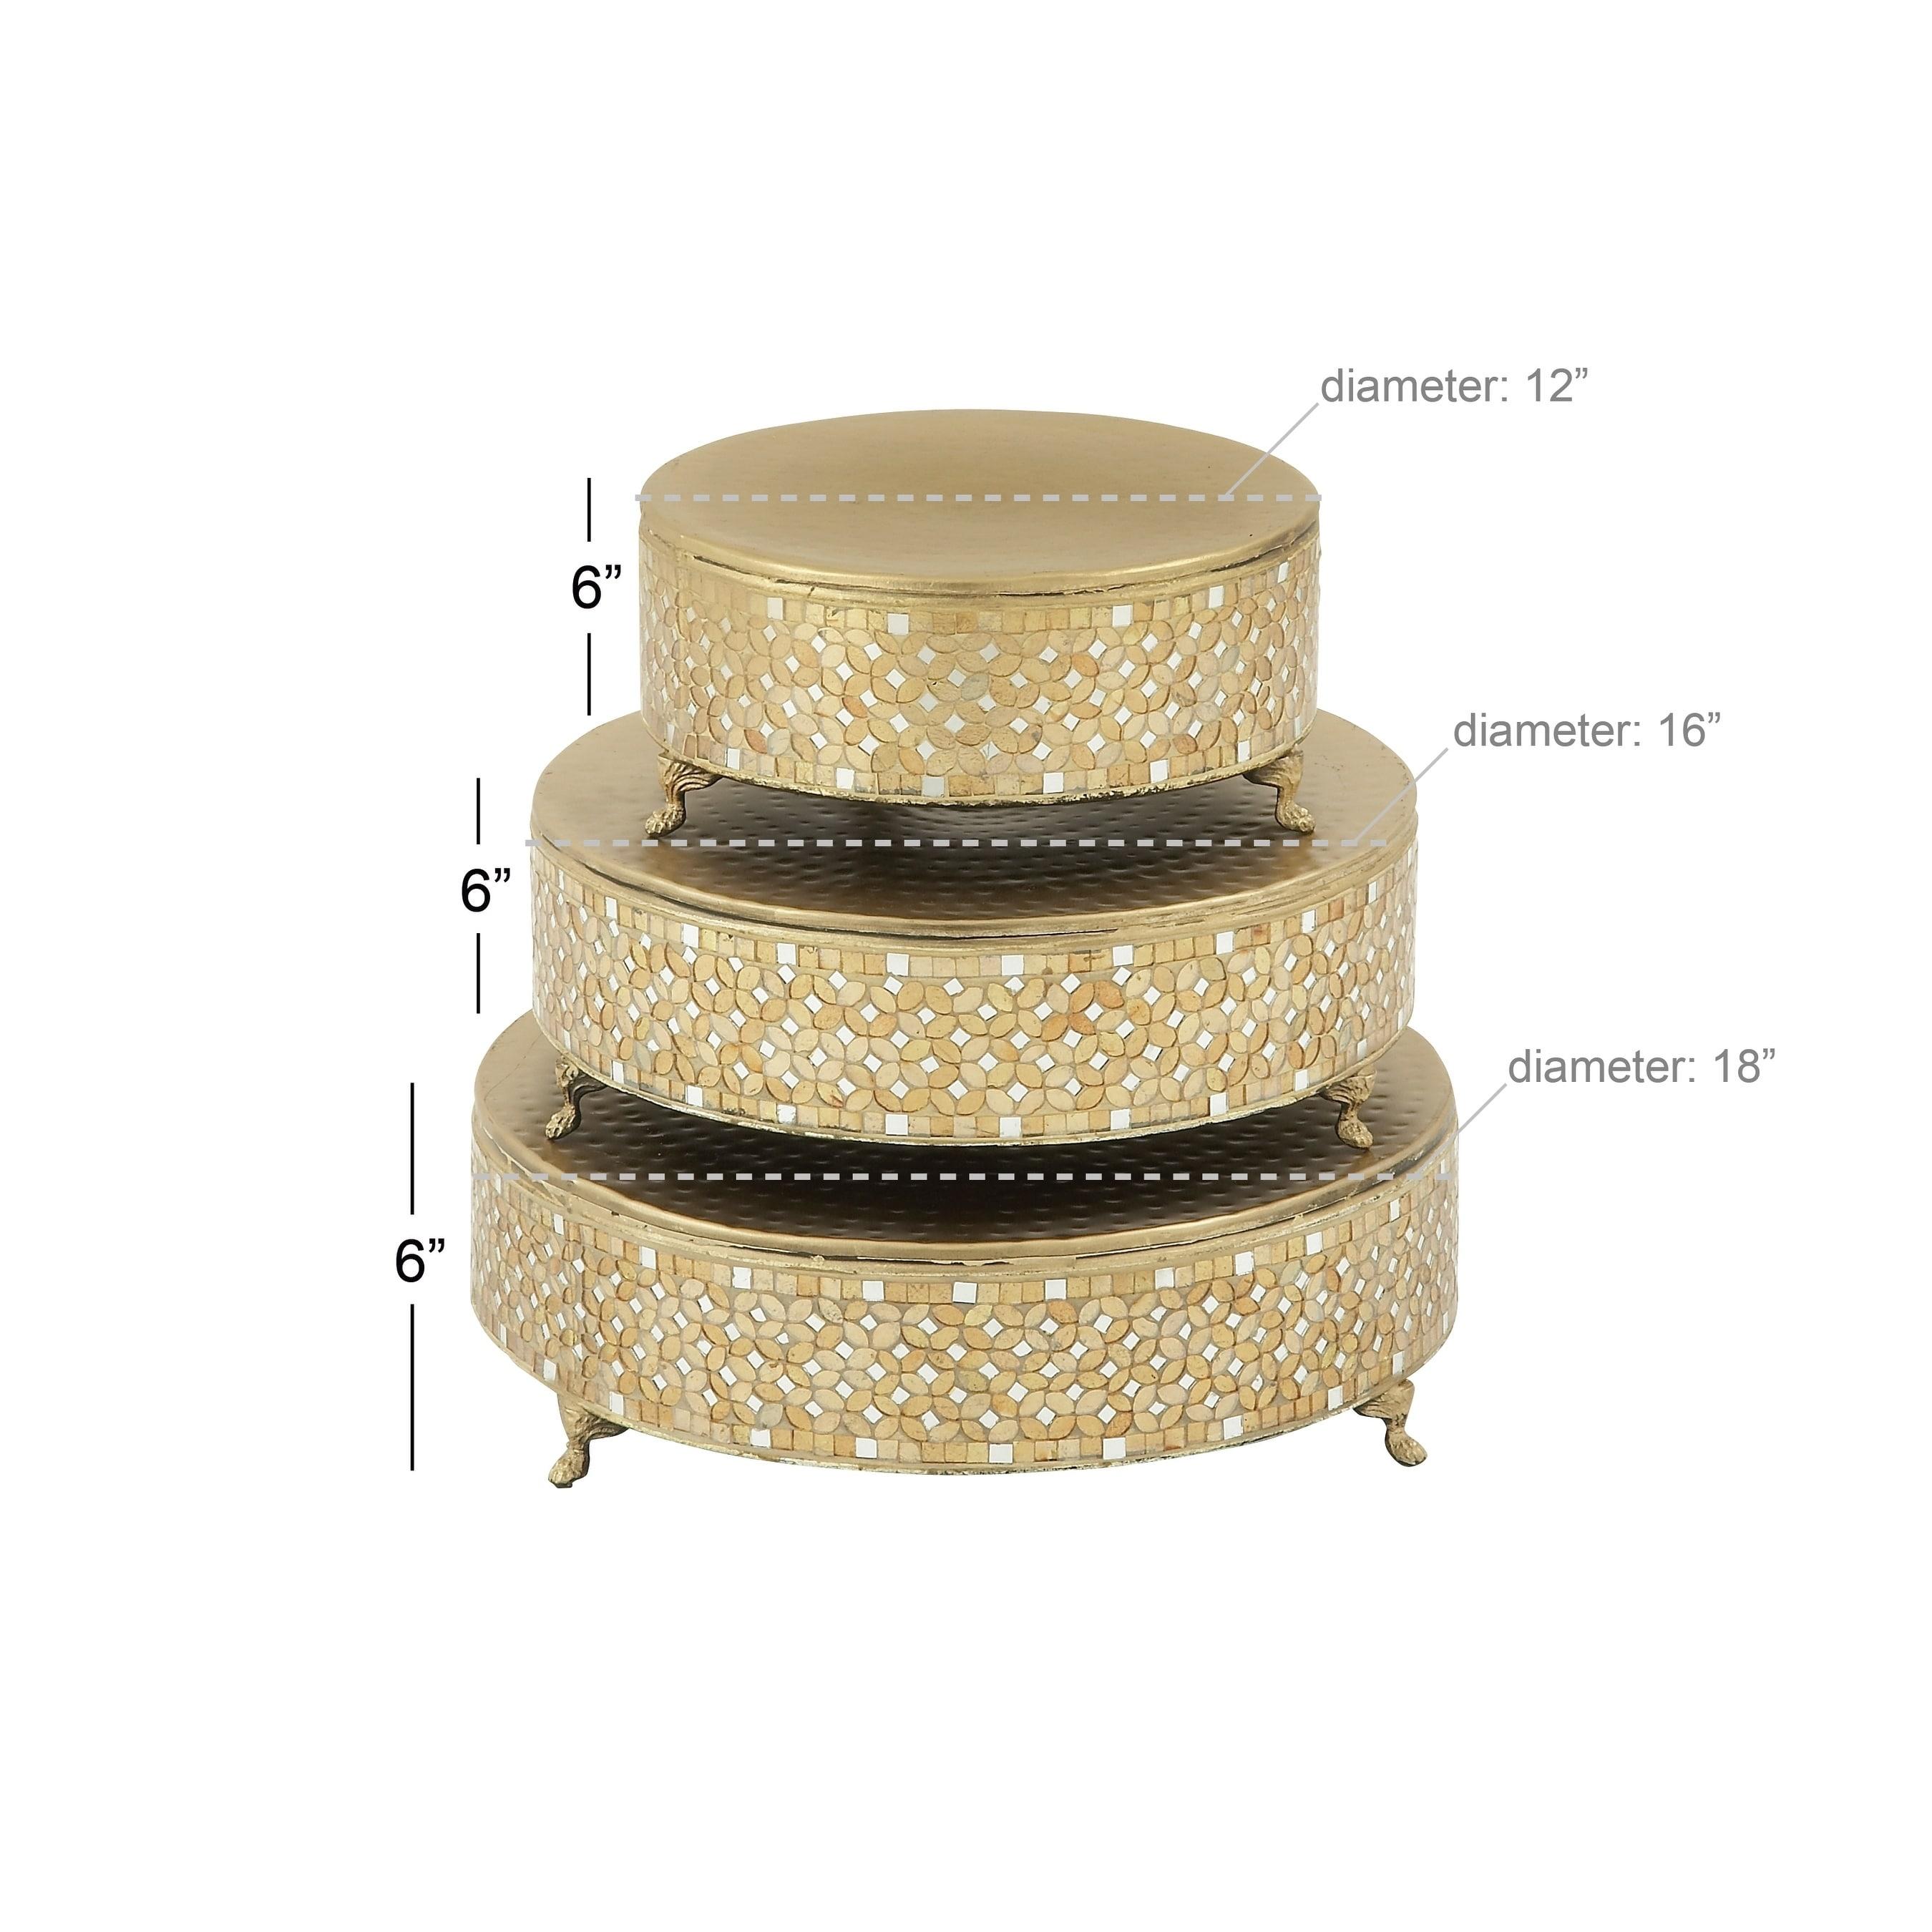 Shop Set of 3 Modern 12, 16 and 18 Inch Mosaic Cake Stands by Studio ...